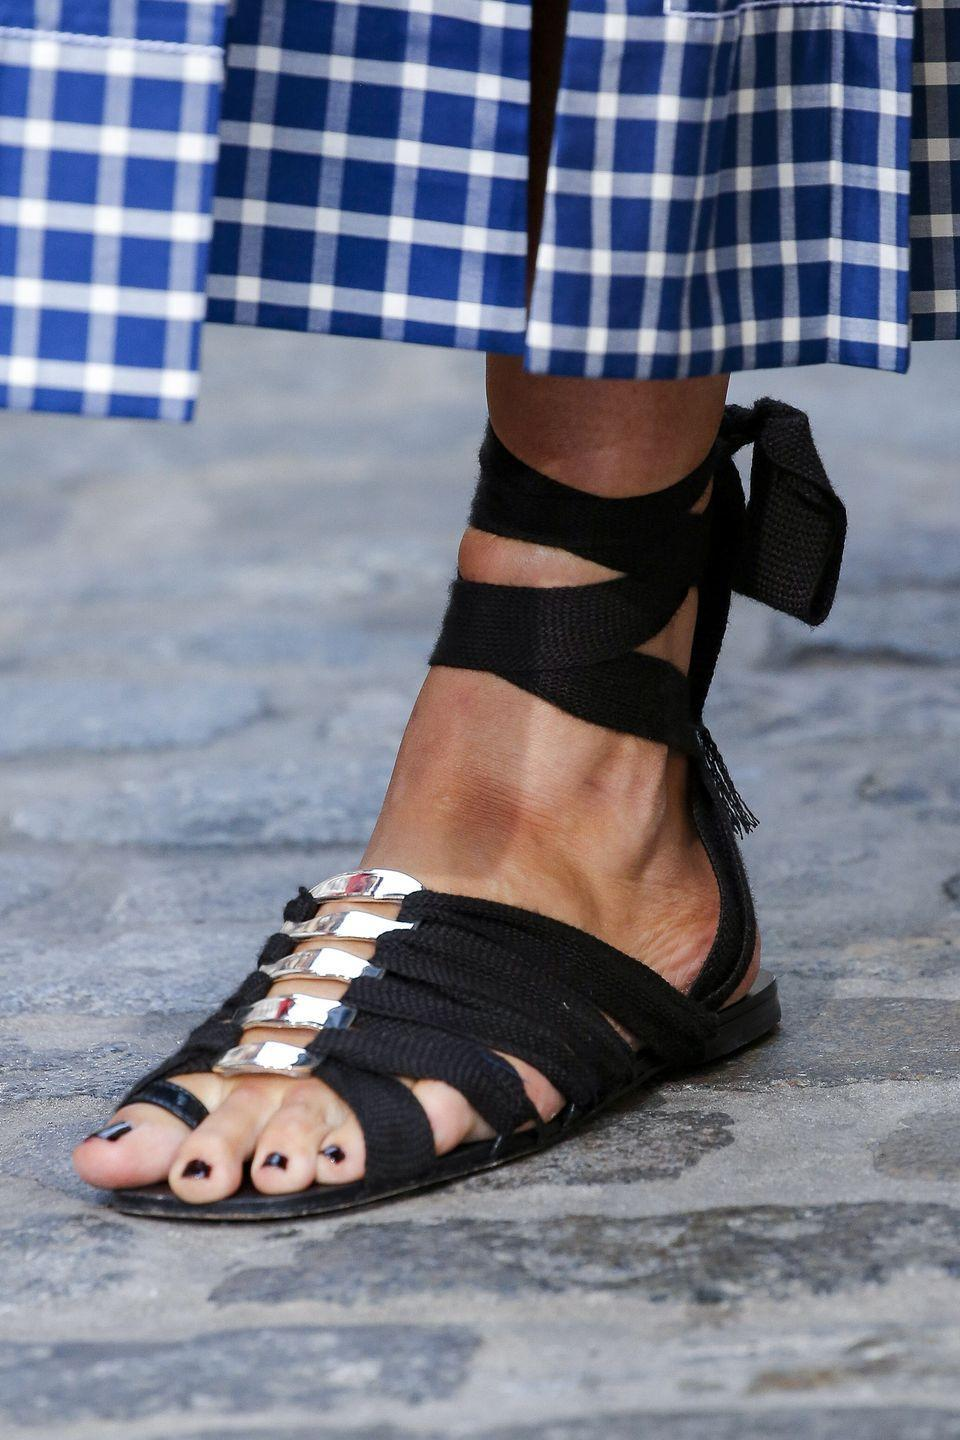 <p>Taking the flossing trend to the next level, Tory Burch also served up strappy, lace-up sandals on its spring catwalk.</p>